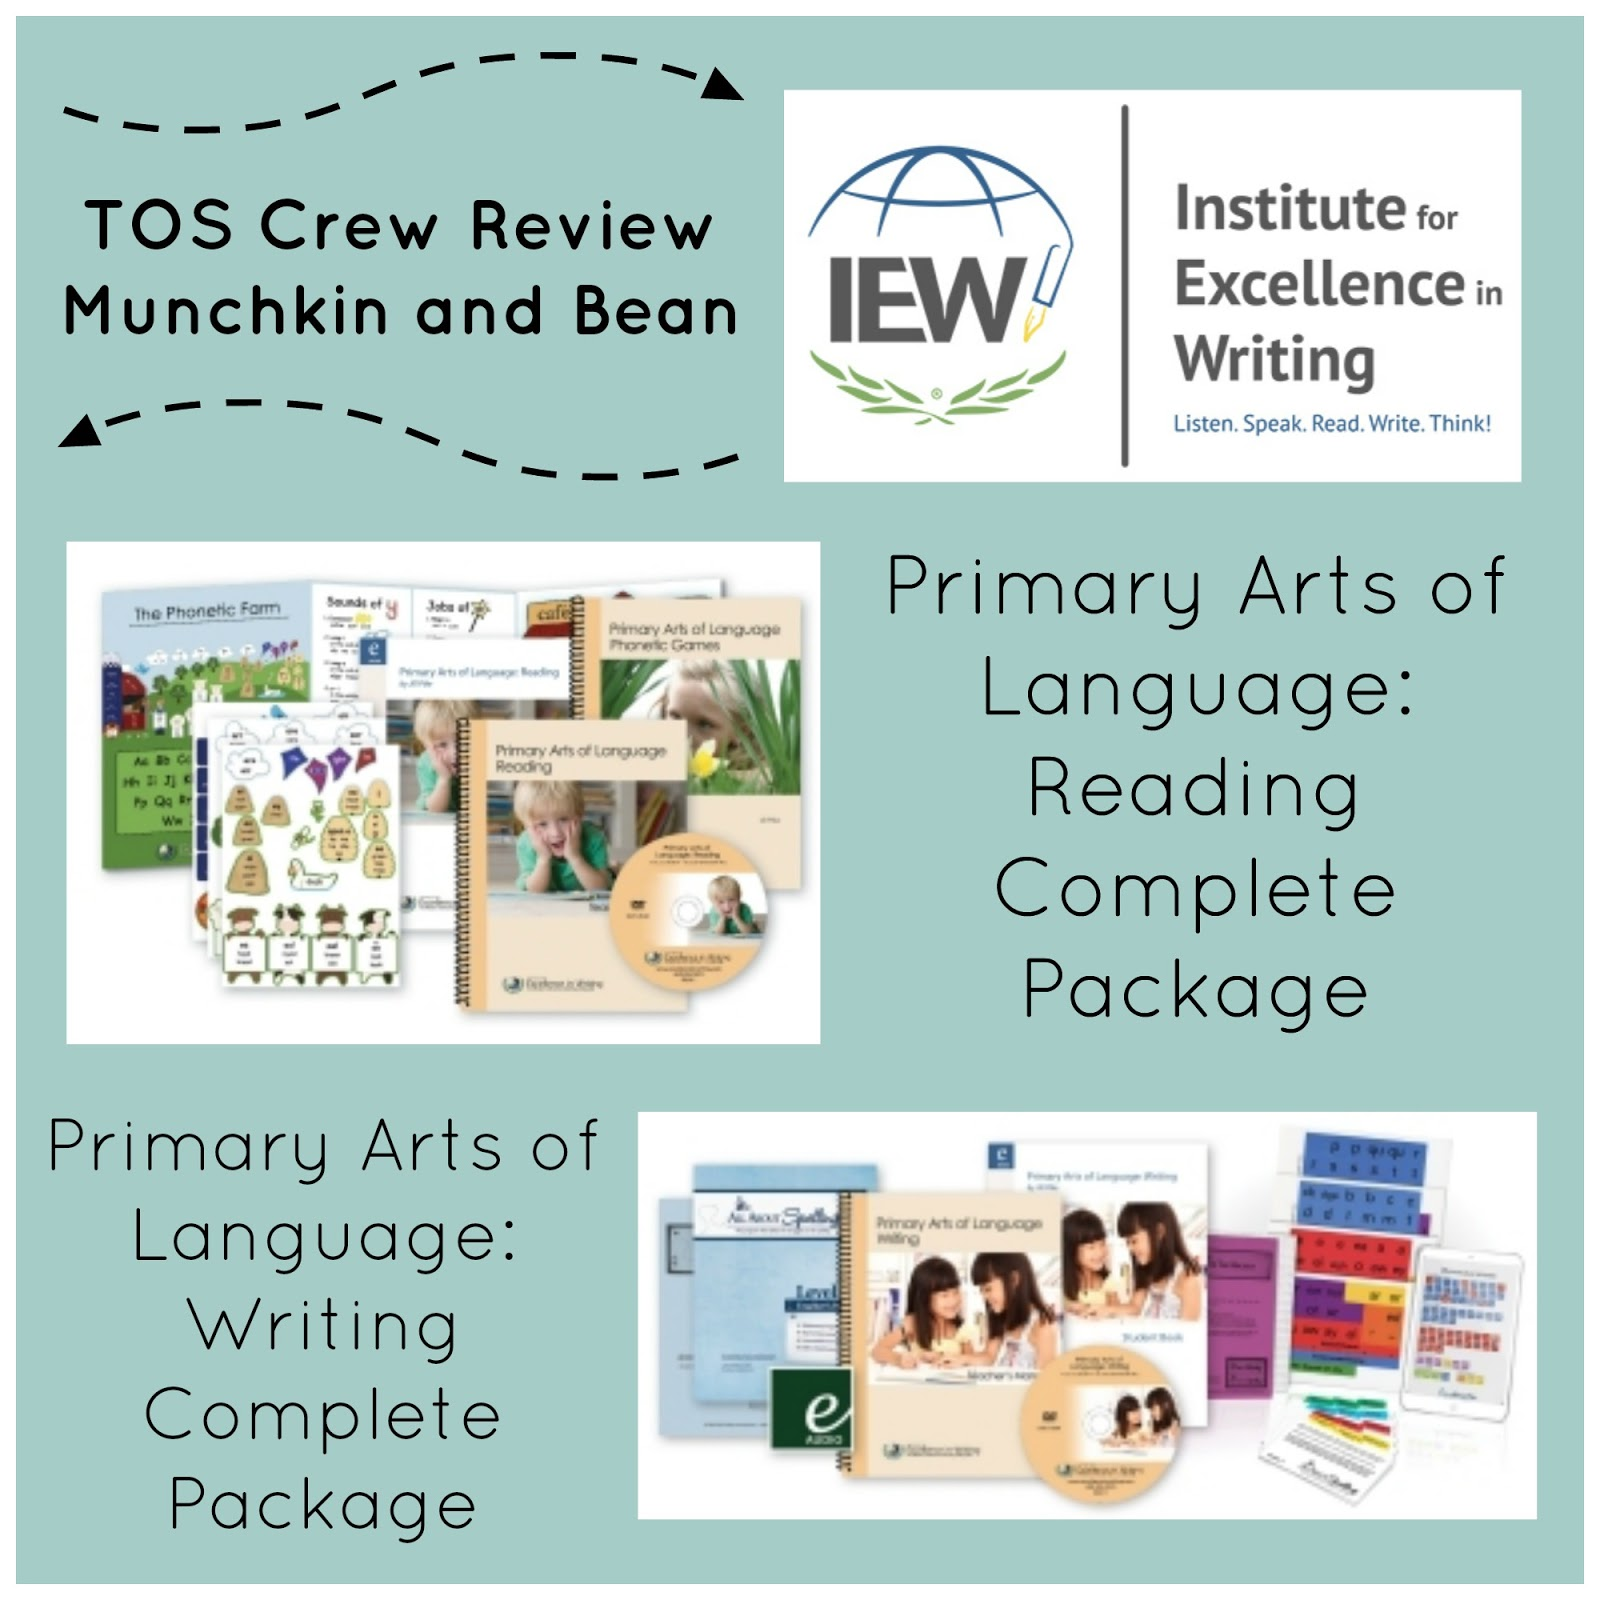 iew writing reviews This is a iew review - institute for excellence in writing.